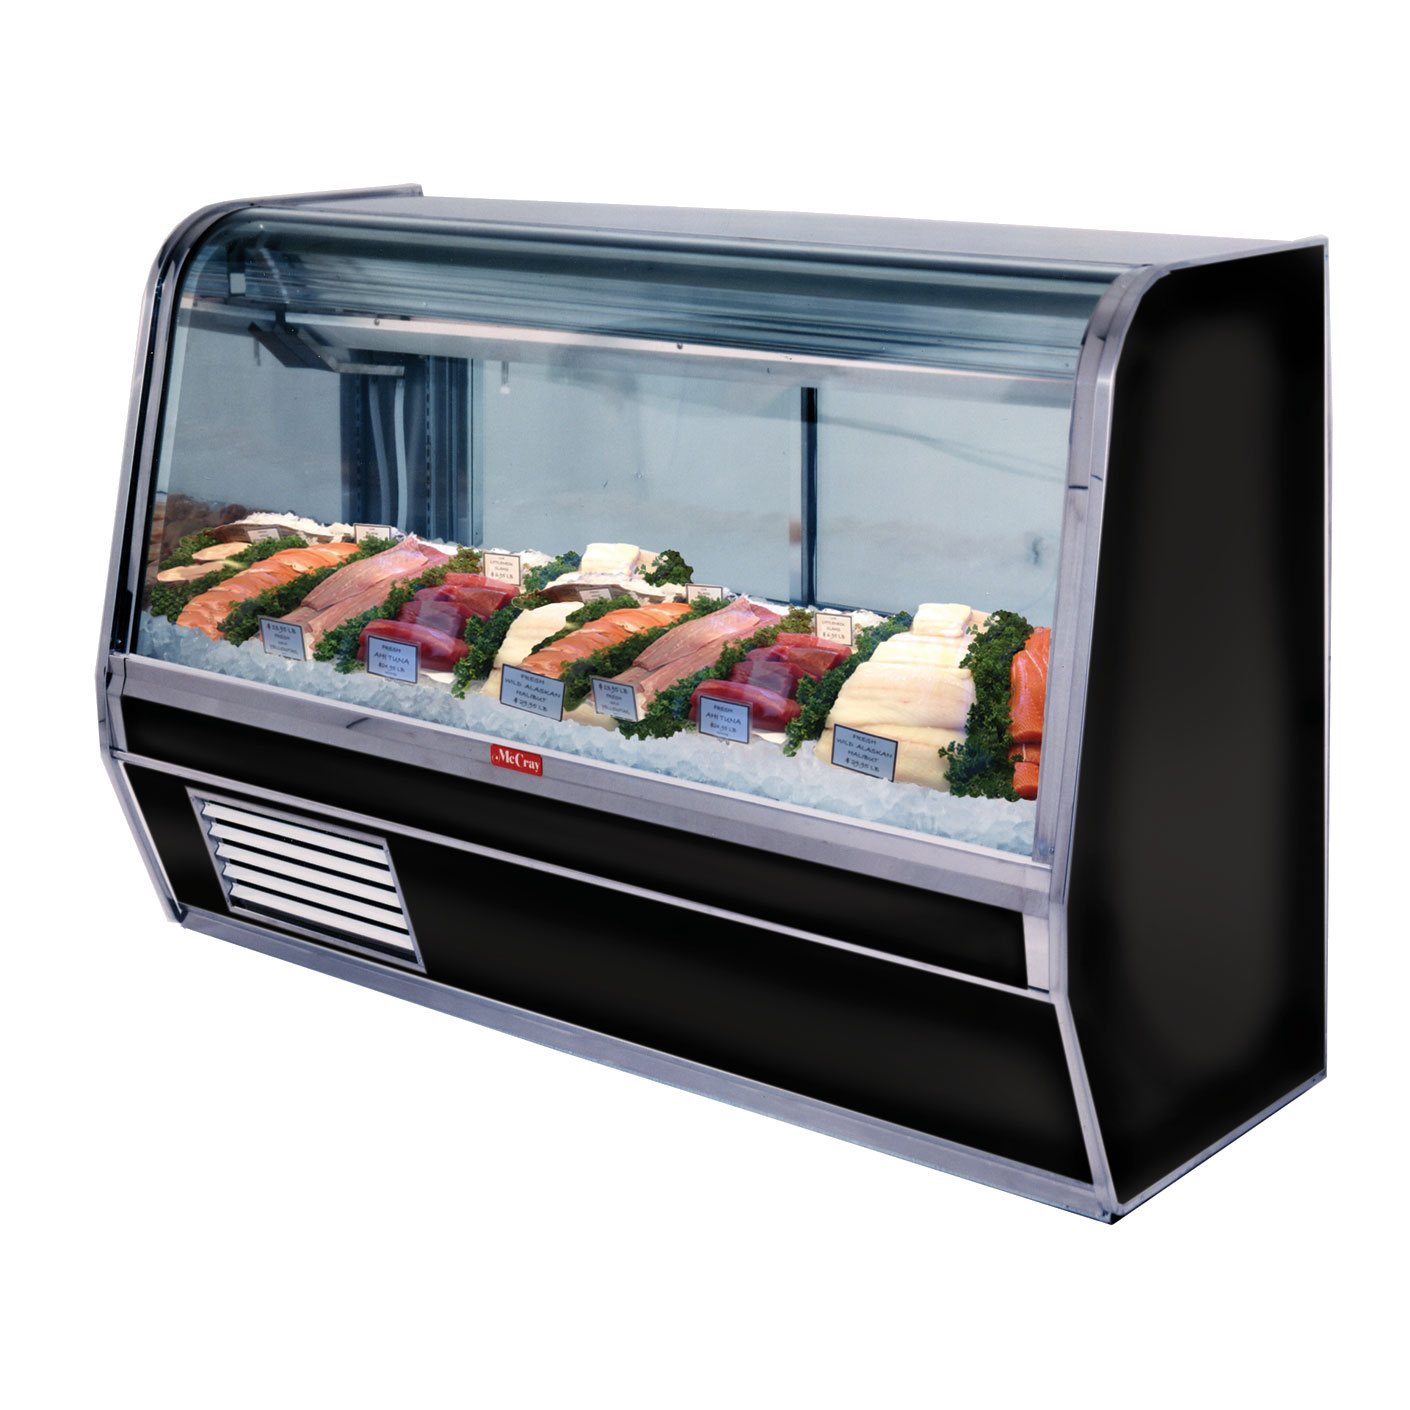 Howard-McCray R-CFS32E-4C-BE-LED display case, deli seafood / poultry